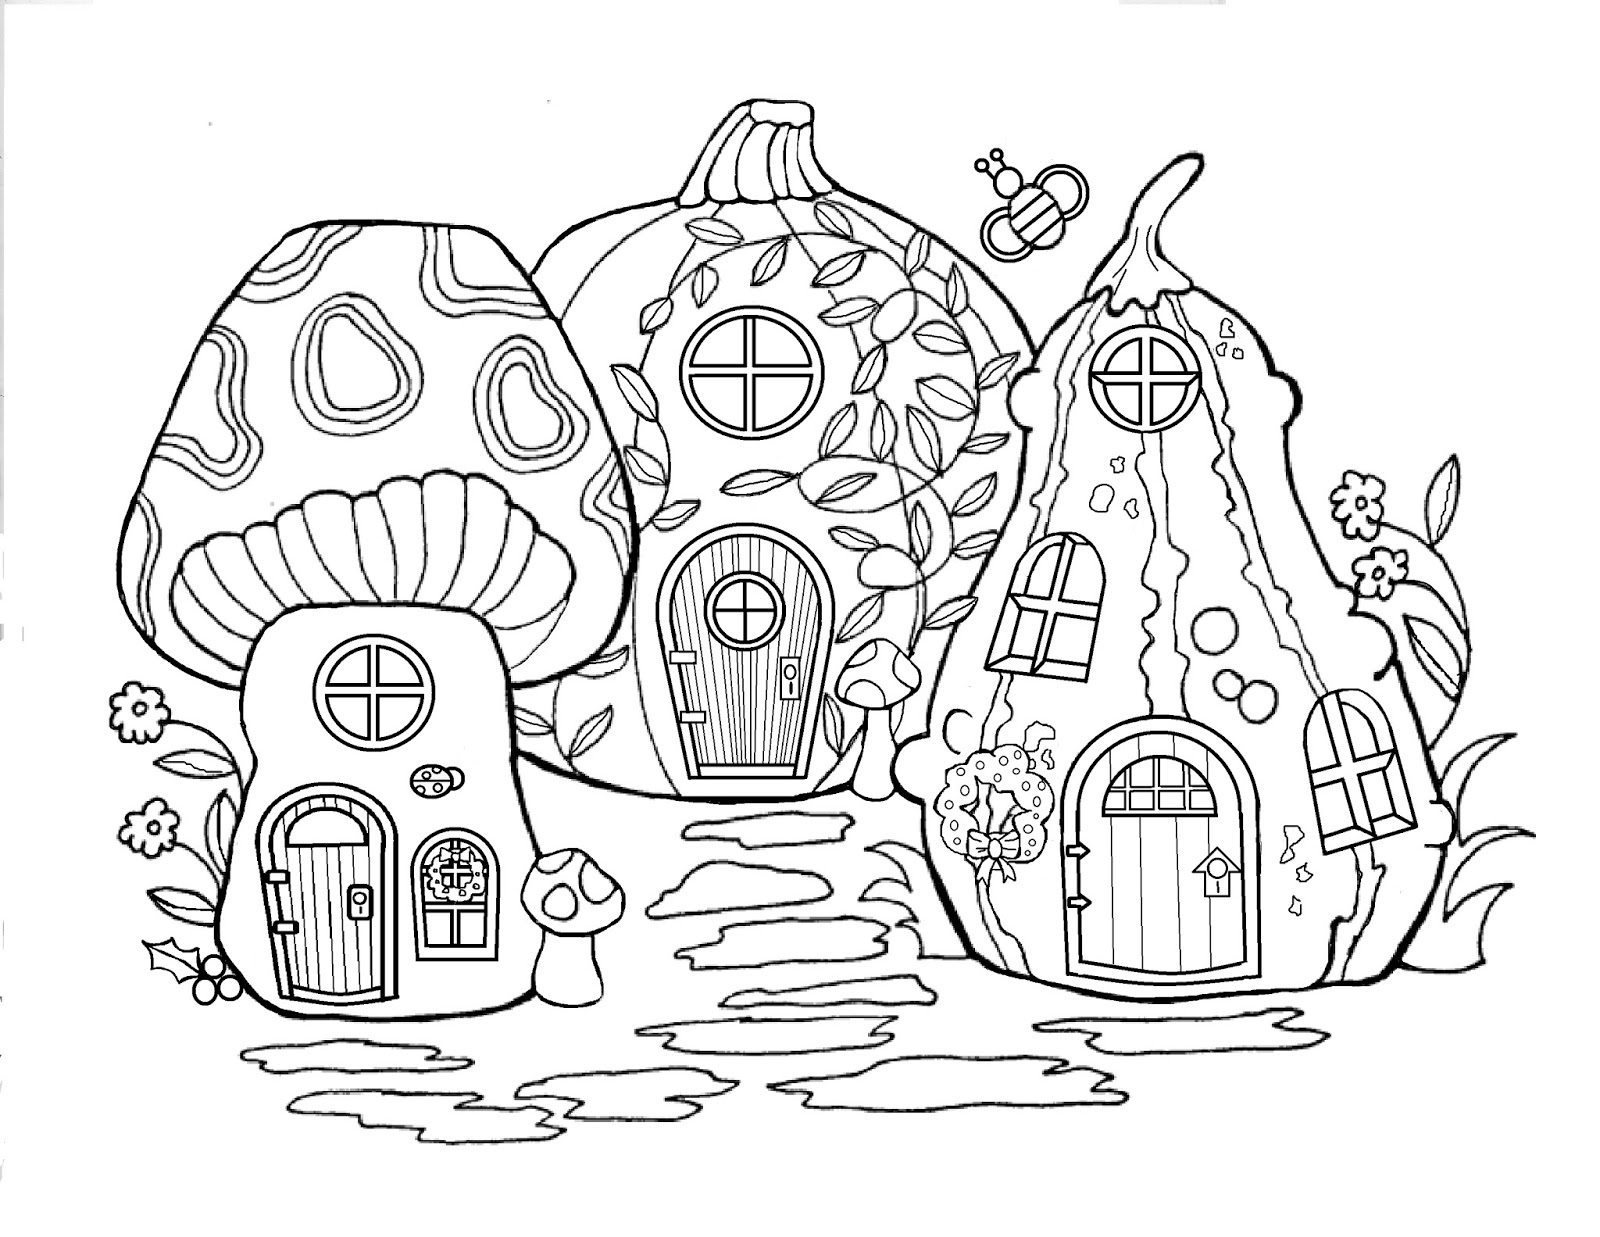 fairy tree house coloring pages Let It Shine: Fairy Merry Christmas   Day13 fairy tree house coloring pages